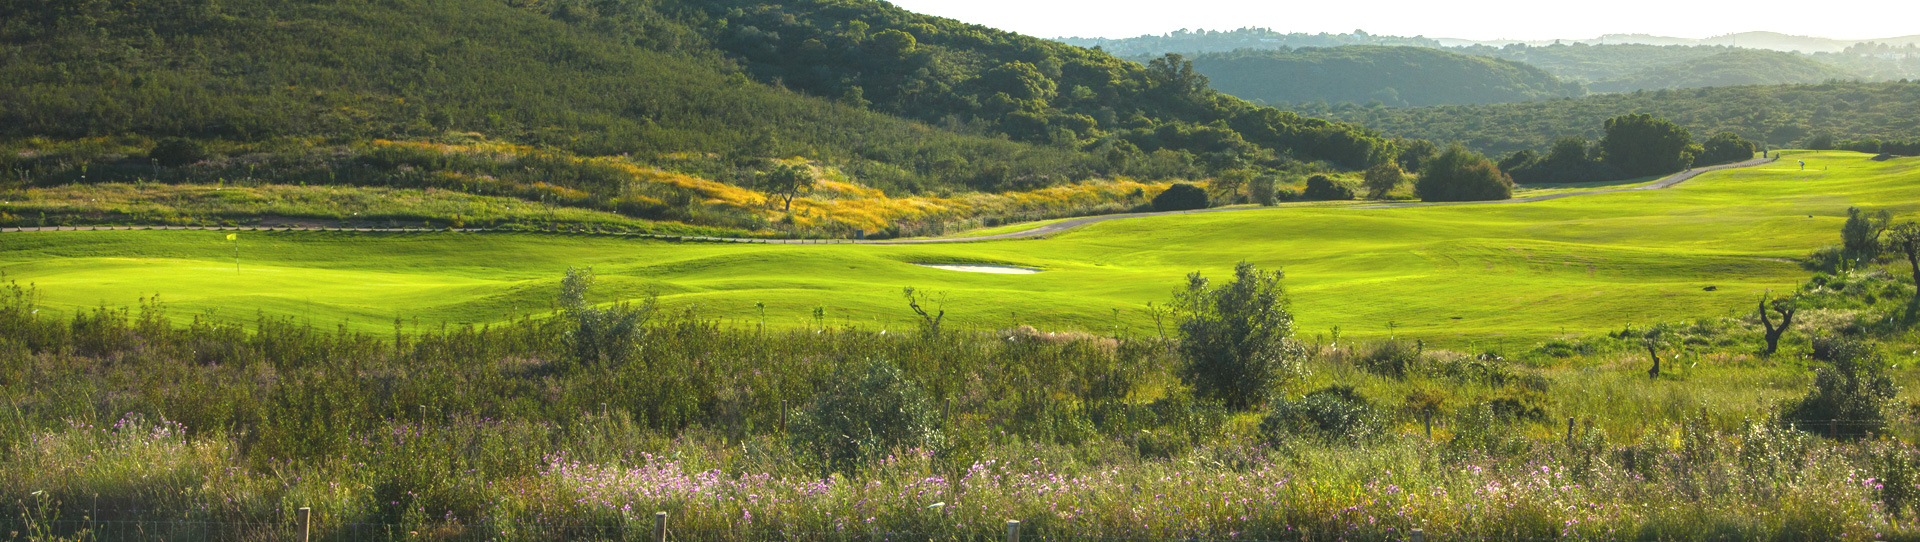 Alamos Golf Course - Photo 1